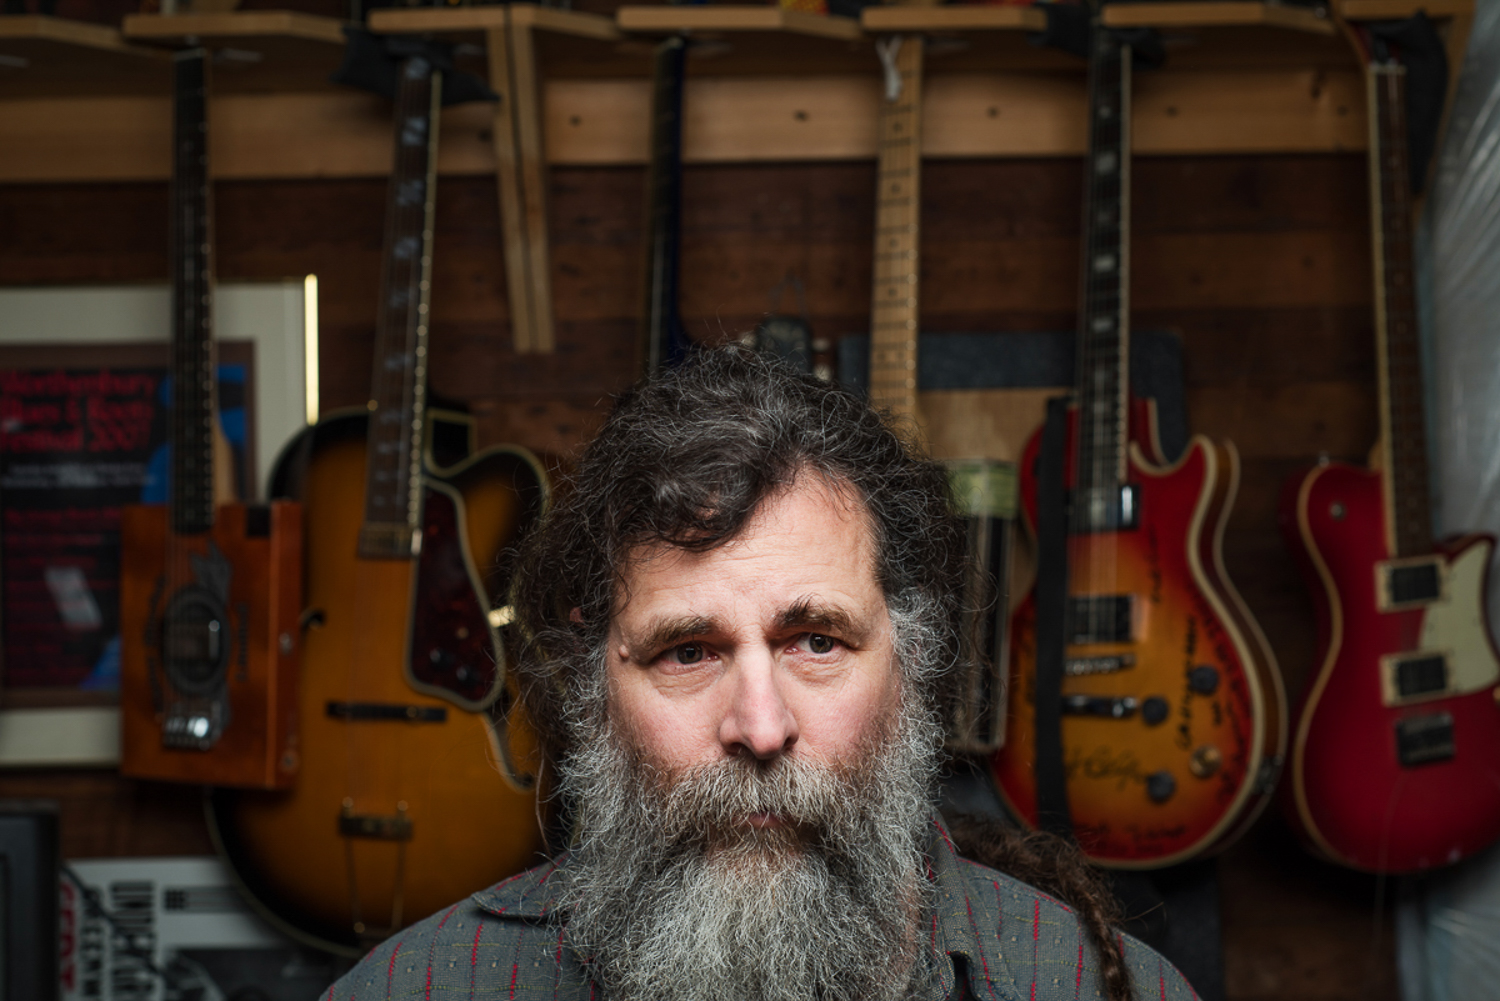 Mr. Bill Abel from Belzoni Mississippi, the undisputed king of the cigar box guitar. Plays the raw gut-bucket blues he learned from Paul Wine Jones, T Model Ford, Cadillac John and other bluesmen with unique names.